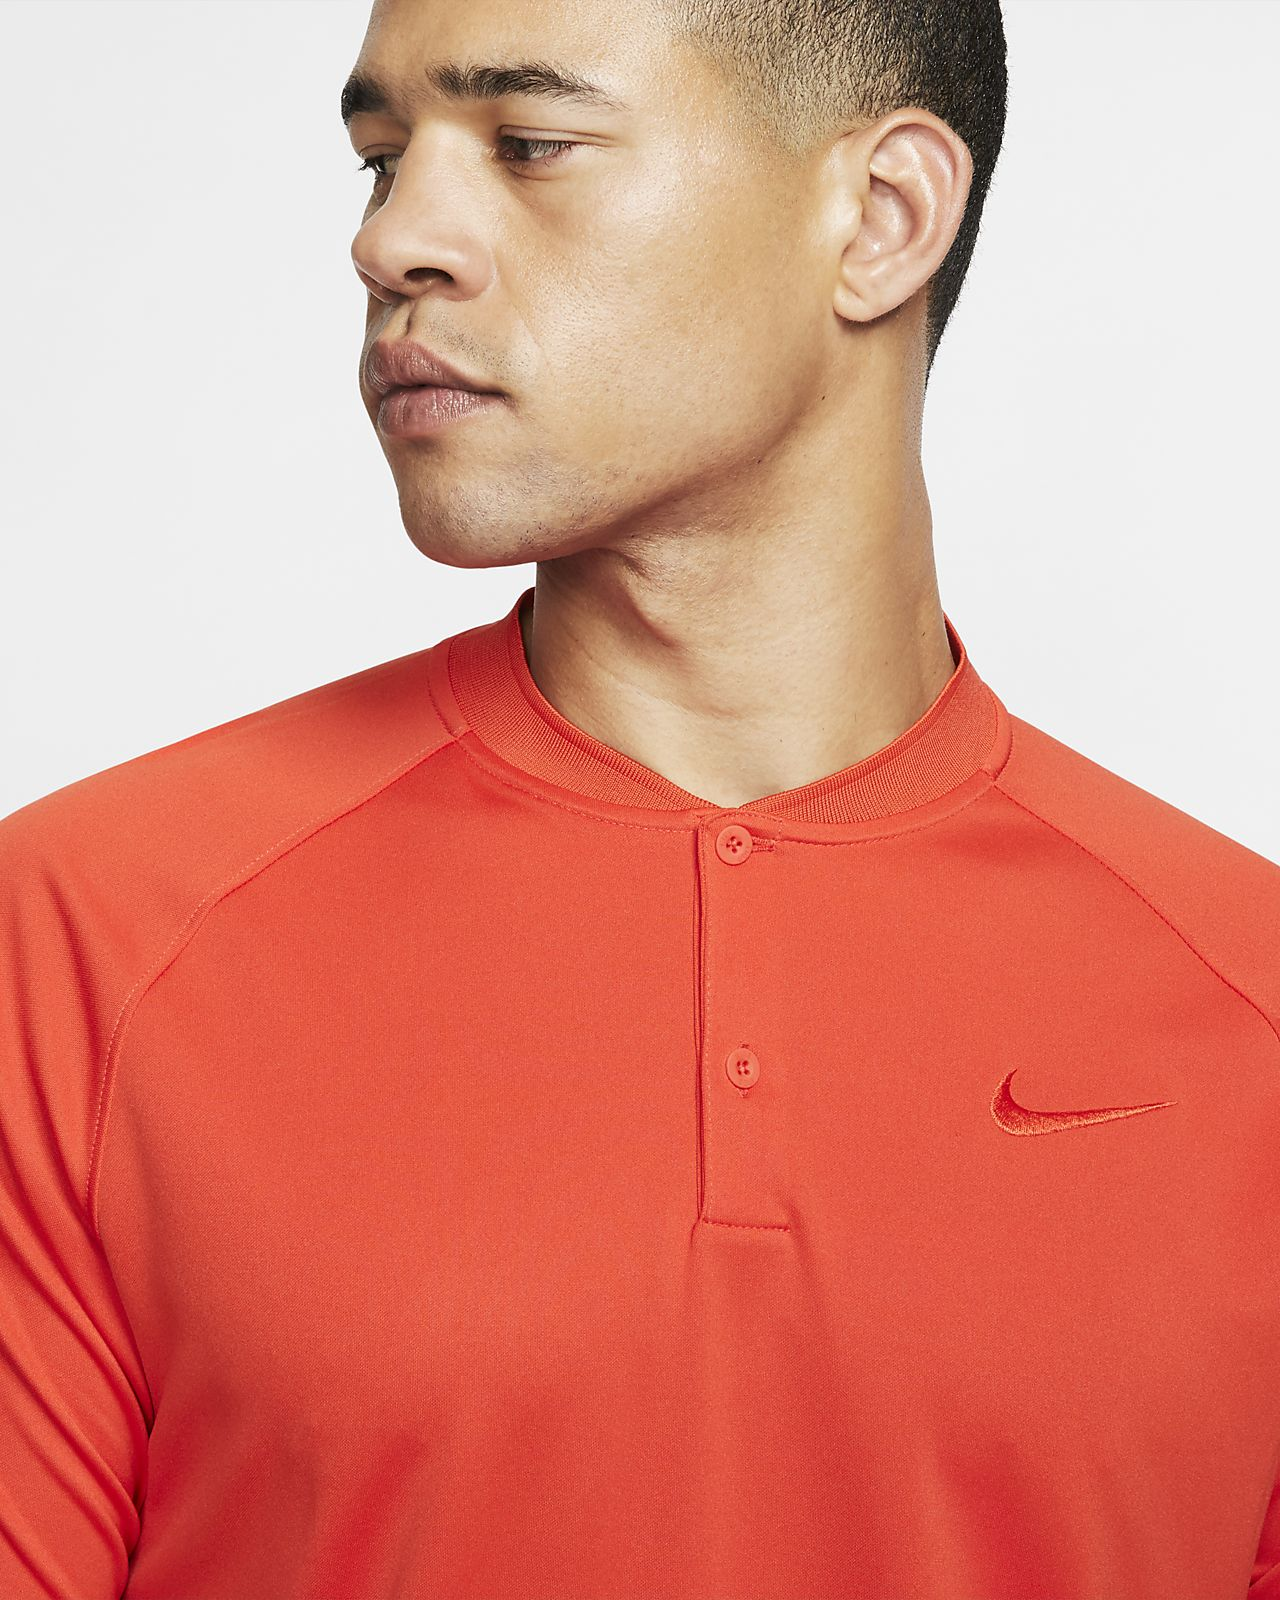 66e50b79 Nike Dri-FIT Momentum Men's Standard Fit Golf Polo. Nike.com